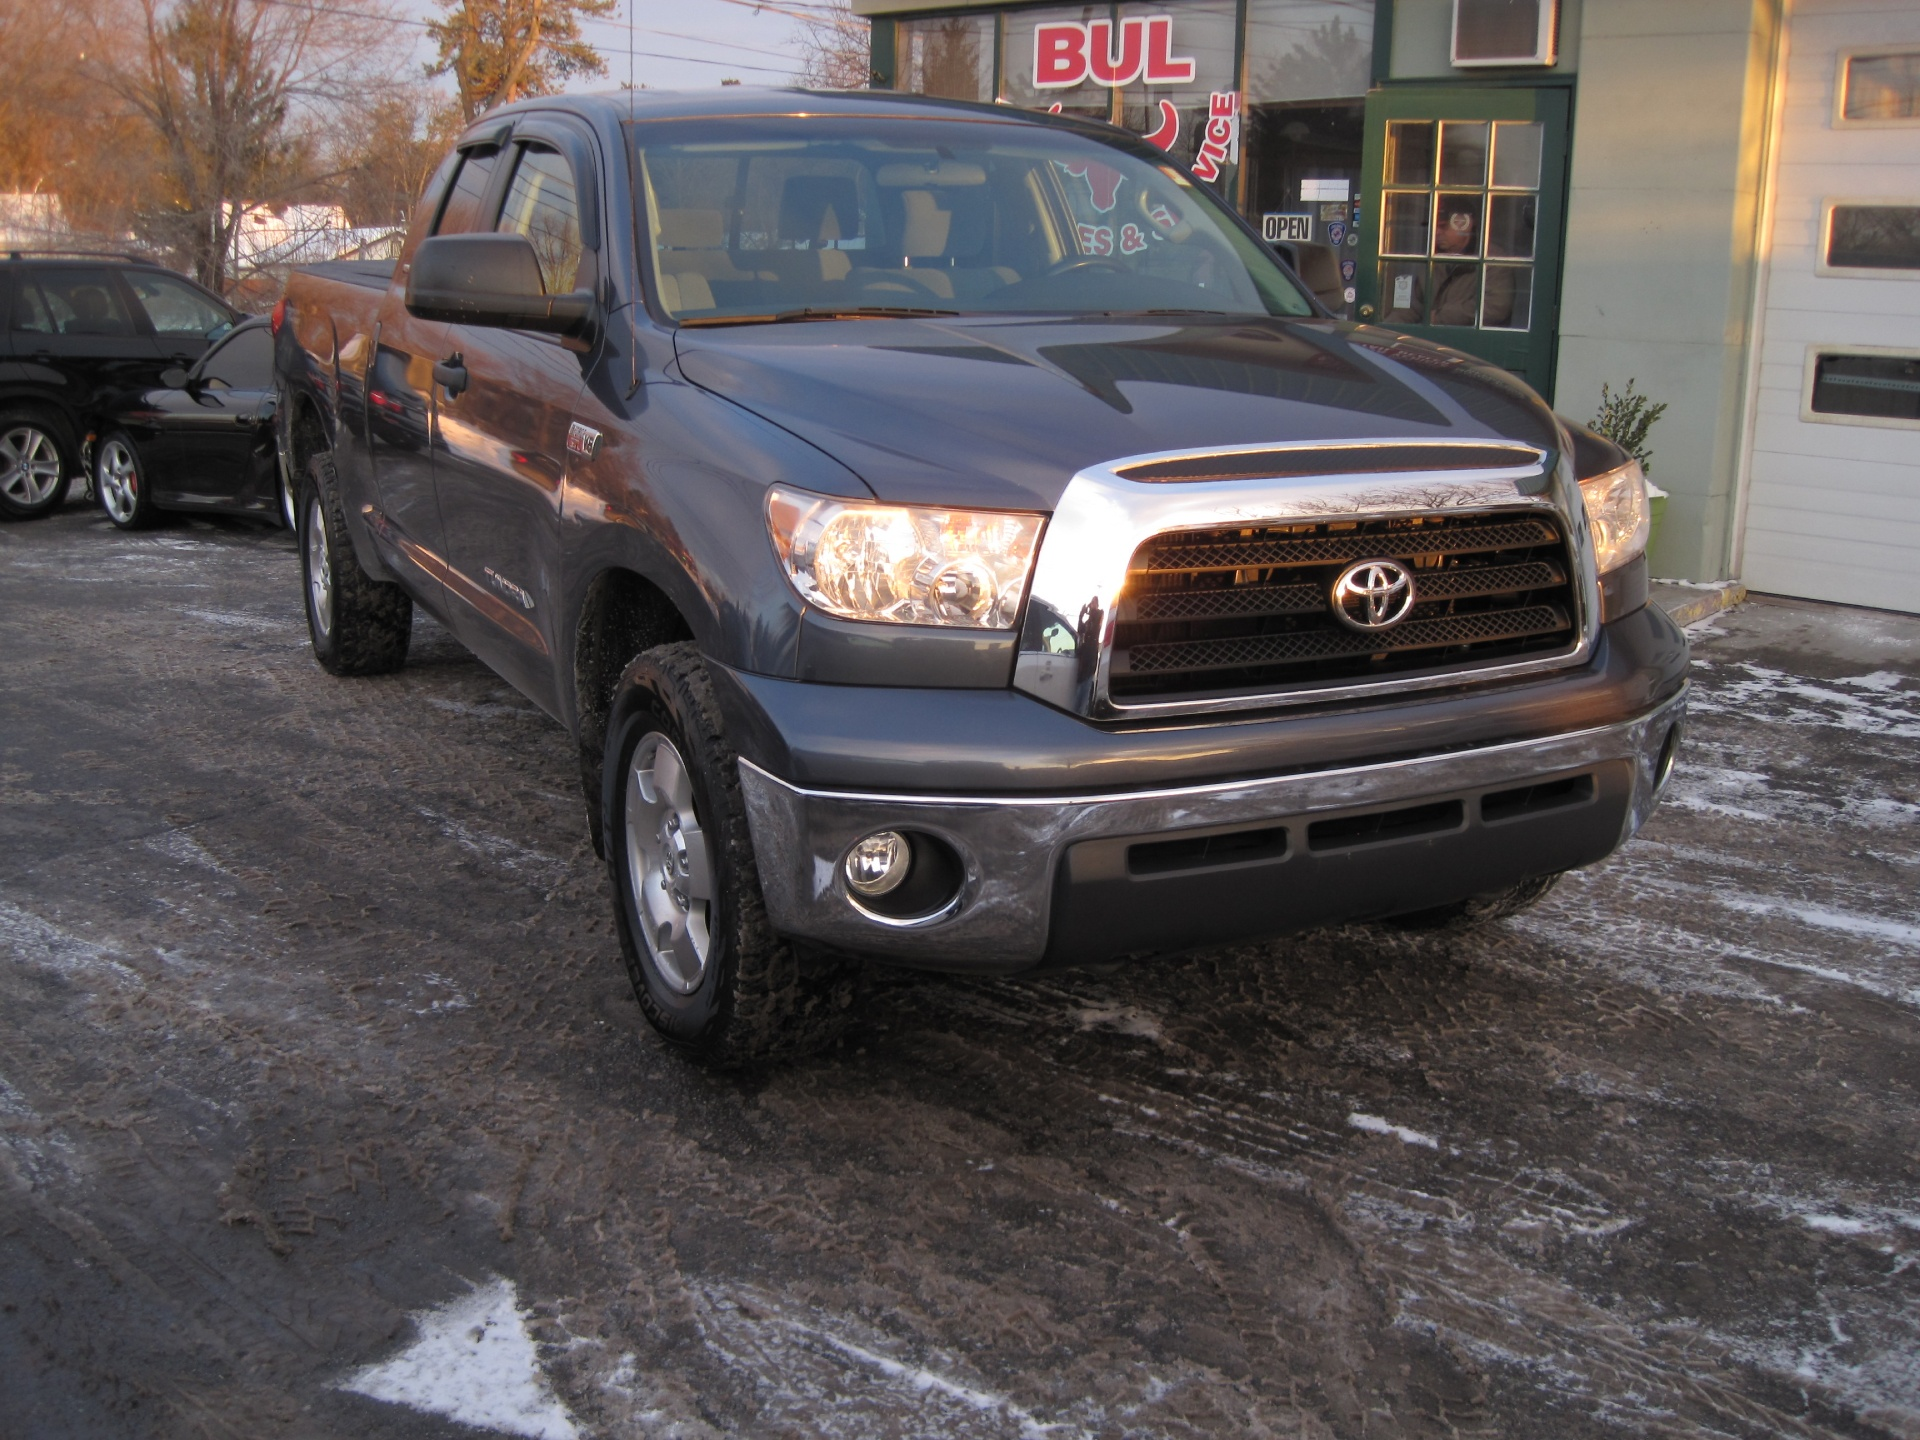 2008 toyota tundra sr5 trd off road double cab 4x4 stock 15021 for sale near albany ny ny. Black Bedroom Furniture Sets. Home Design Ideas